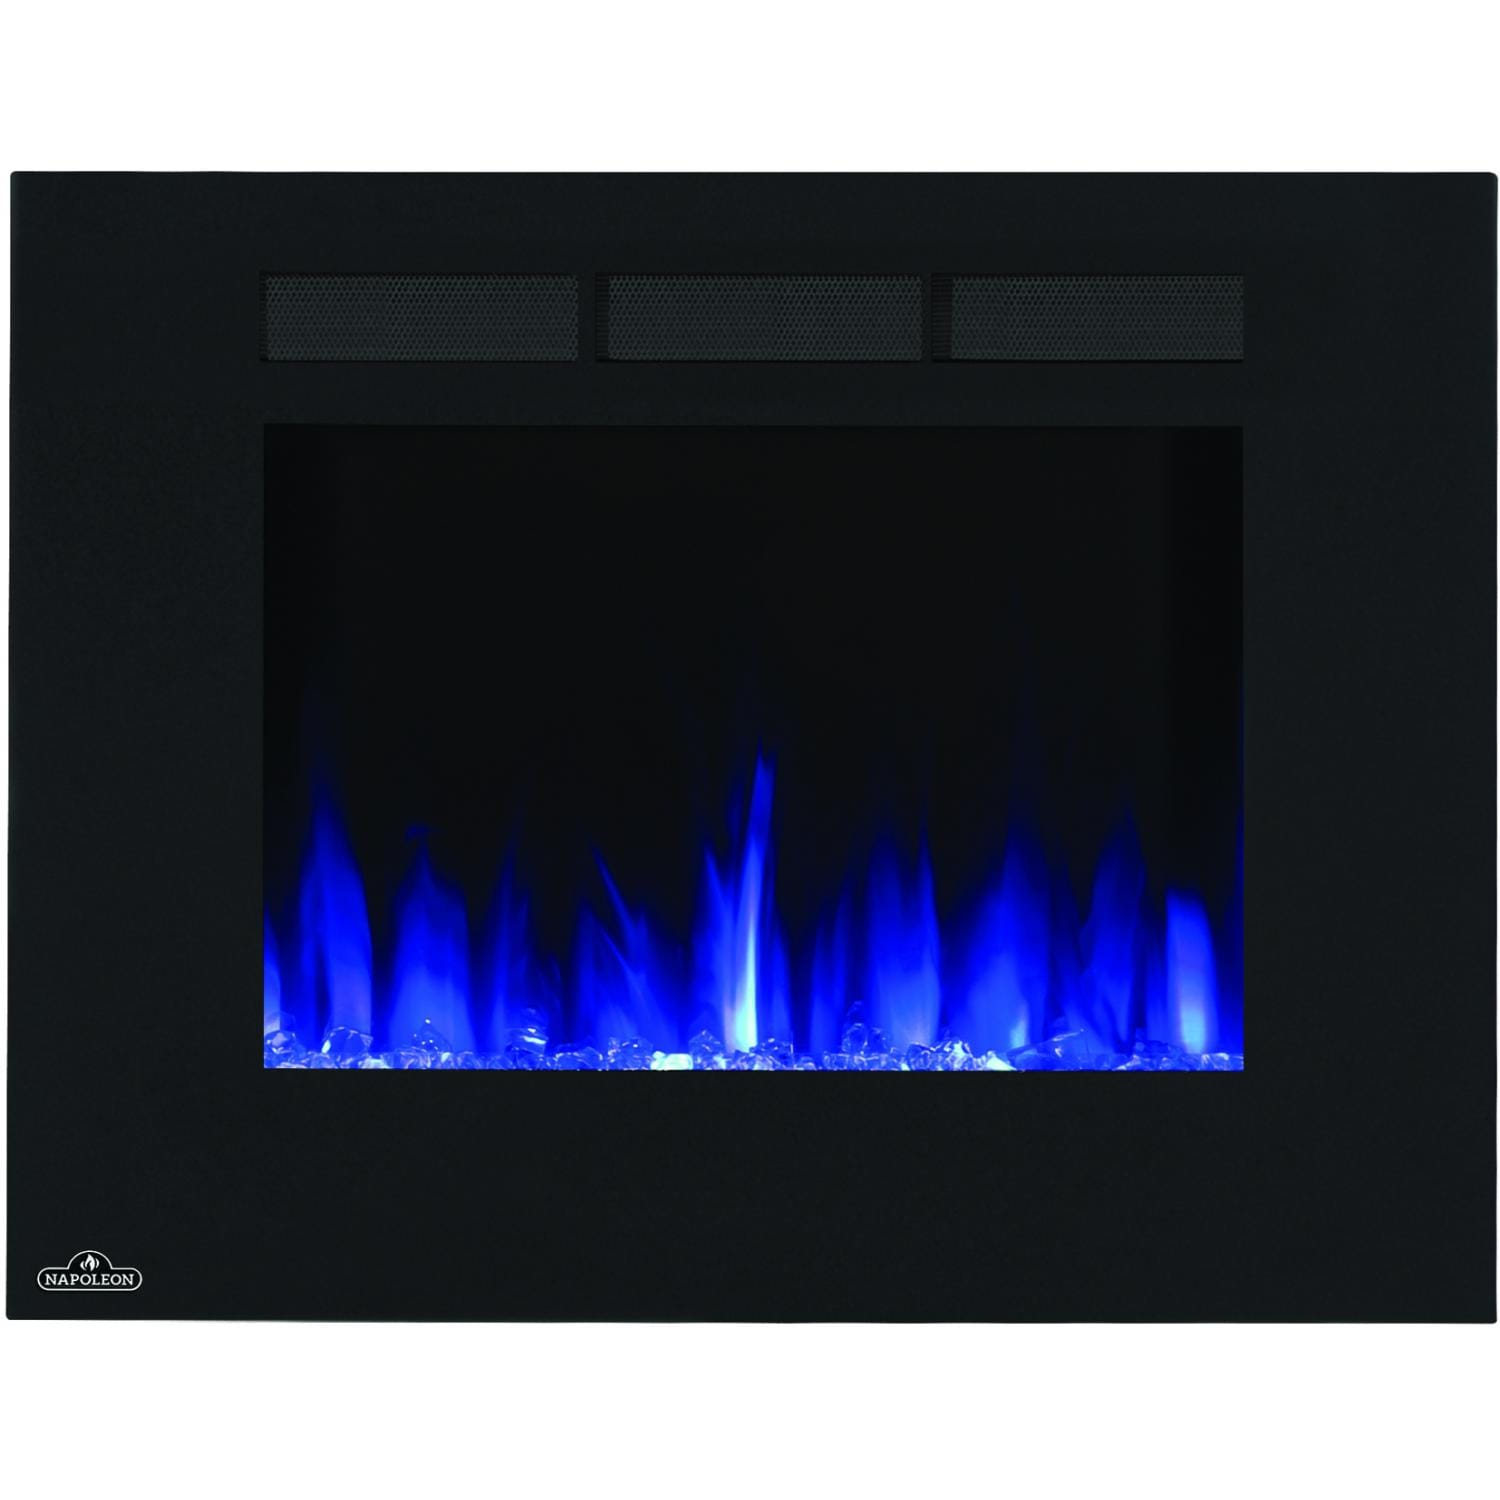 Create a home environment designed to make living easier with modern and contemporary electric fireplaces from Napoleon. Make a statement with this sleek system. The 32-inch Allure electric fireplace features reliable high power LED technology with realis